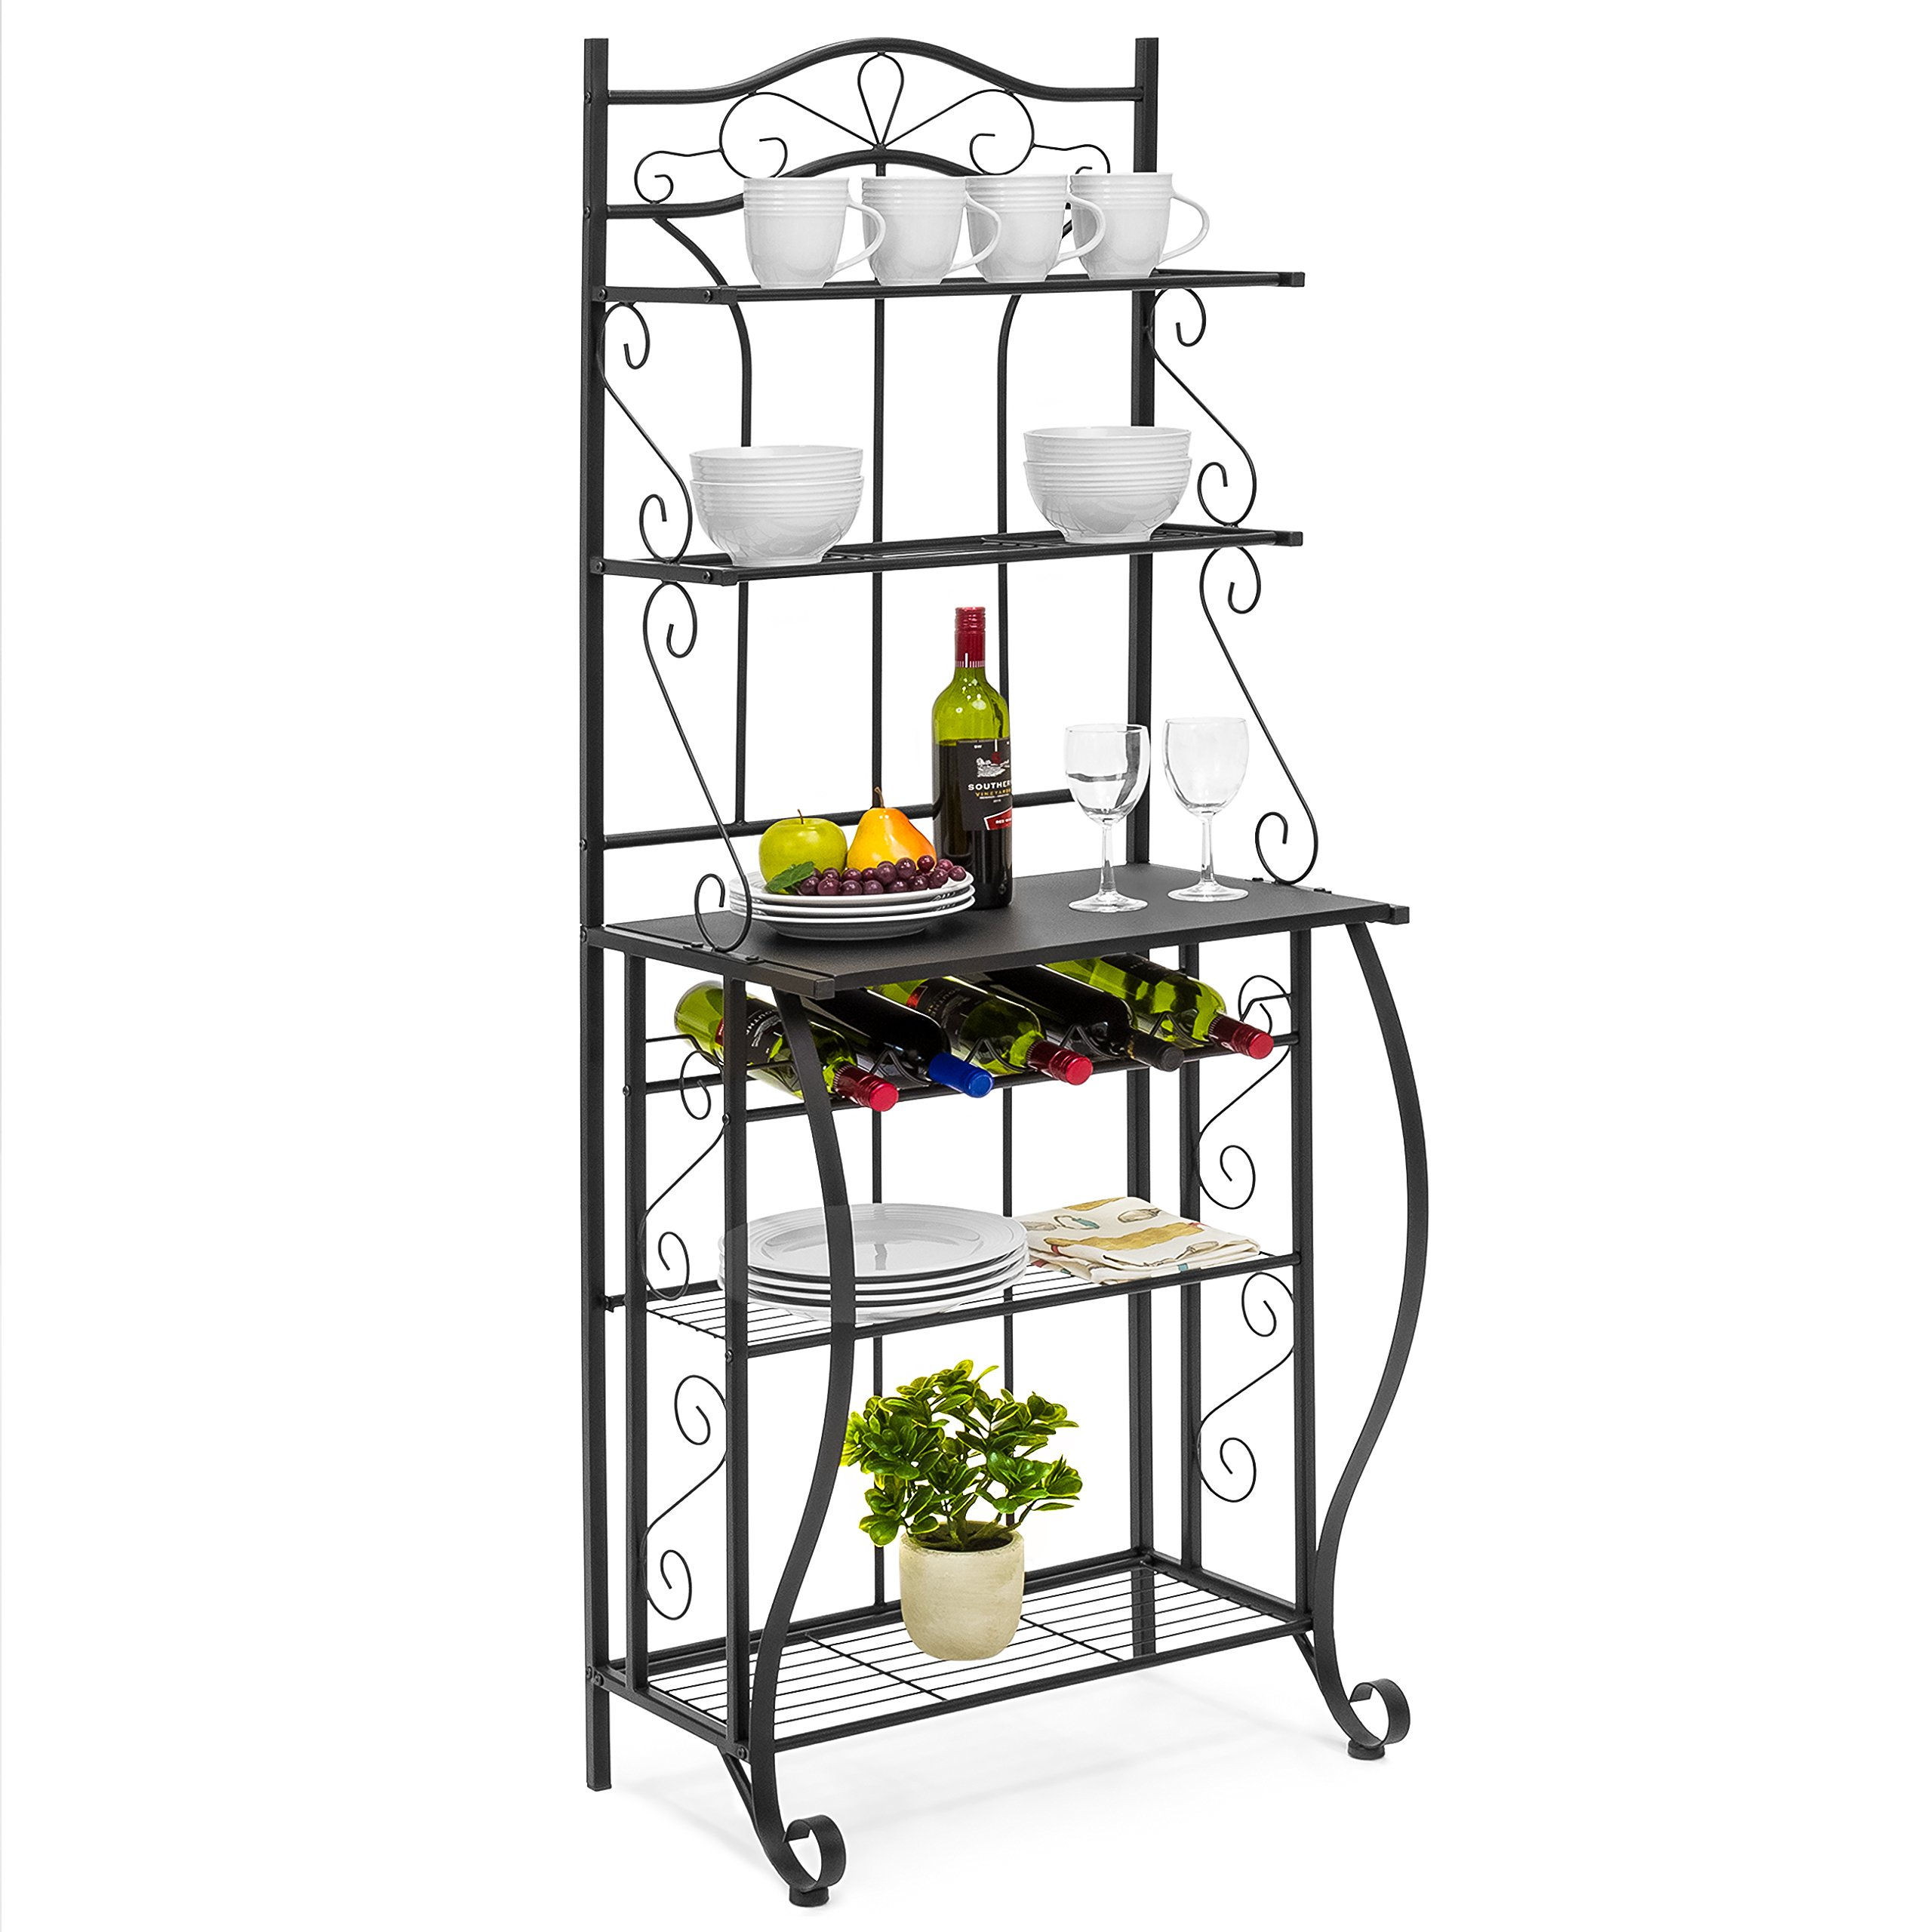 Best Choice Products Multiuse 5 Tier Black Metal Kitchen Bakers Rack by Best Choice Products